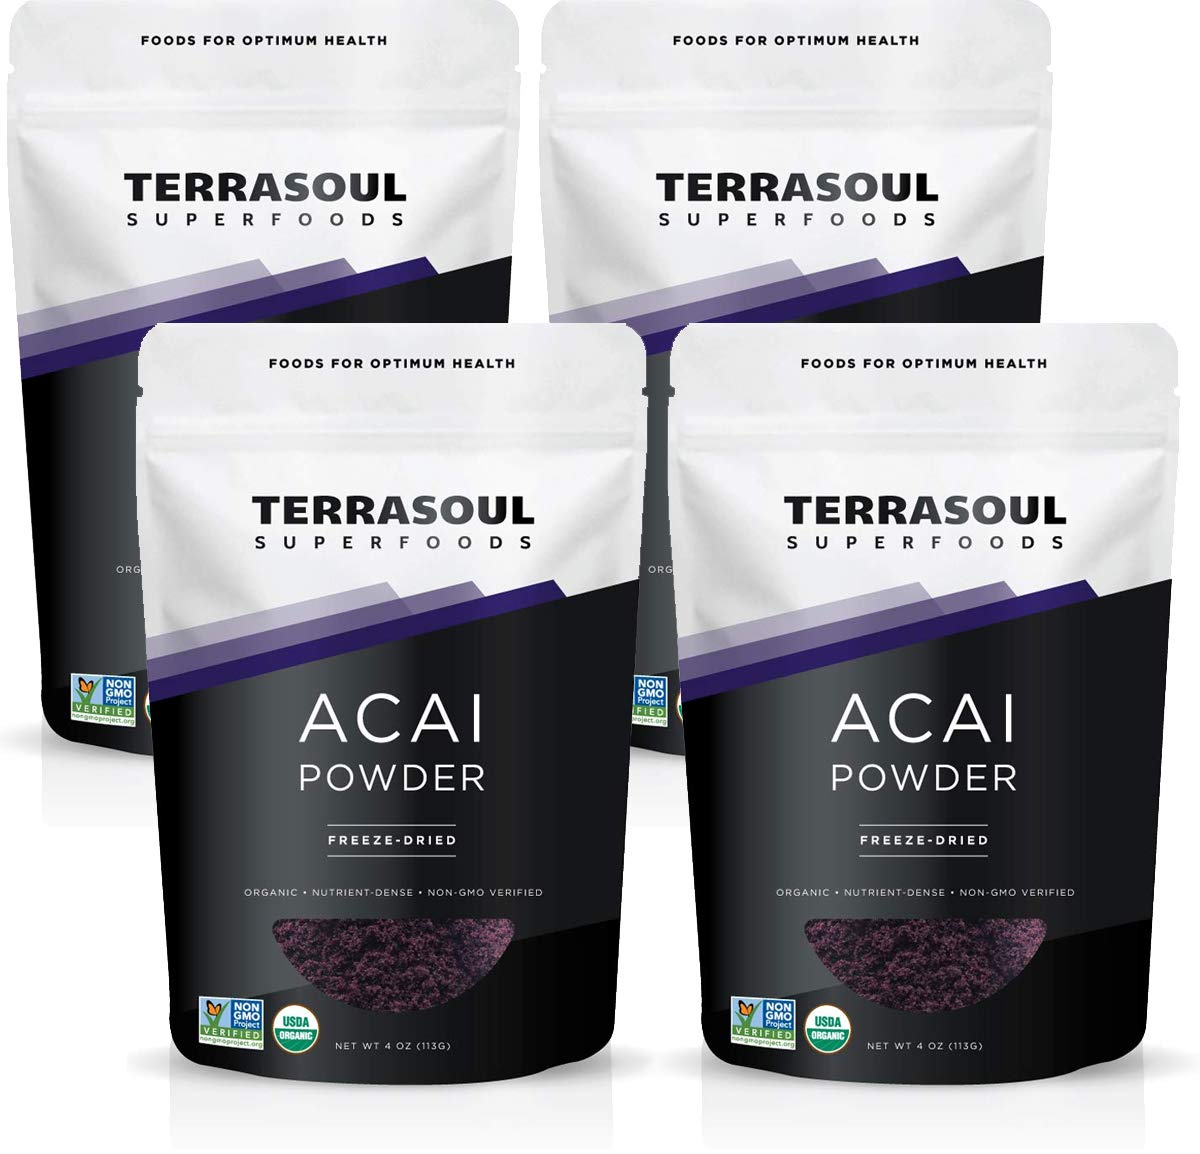 Terrasoul Superfoods Organic Acai Berry Powder, 1 Lb - Freeze-Dried | Antioxidants | Omega Fats by Terrasoul Superfoods (Image #1)